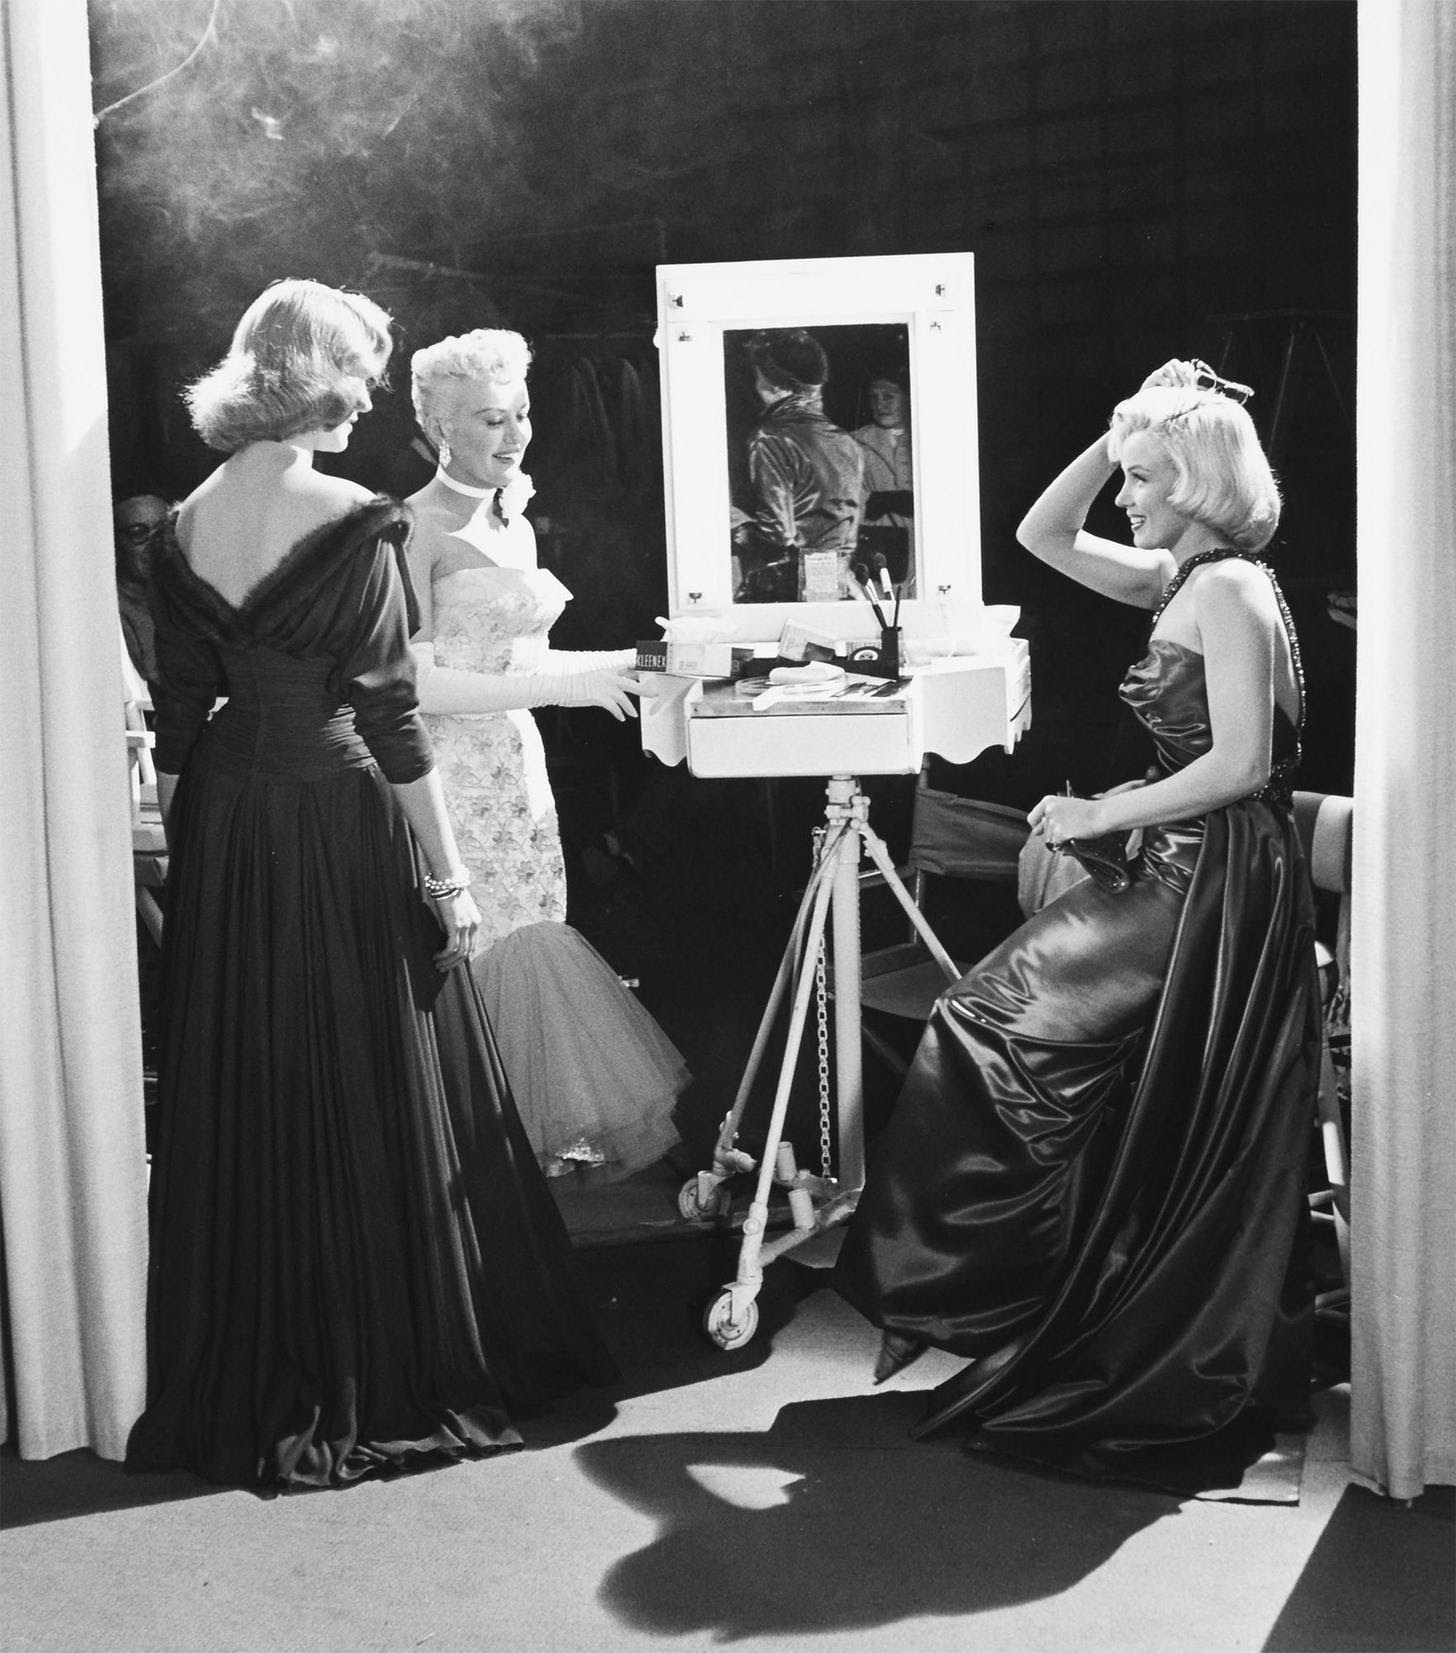 Lauren Bacall, Betty Grable and Marilyn Monroe on the set of the 1953 movie How to Marry a Millionaire